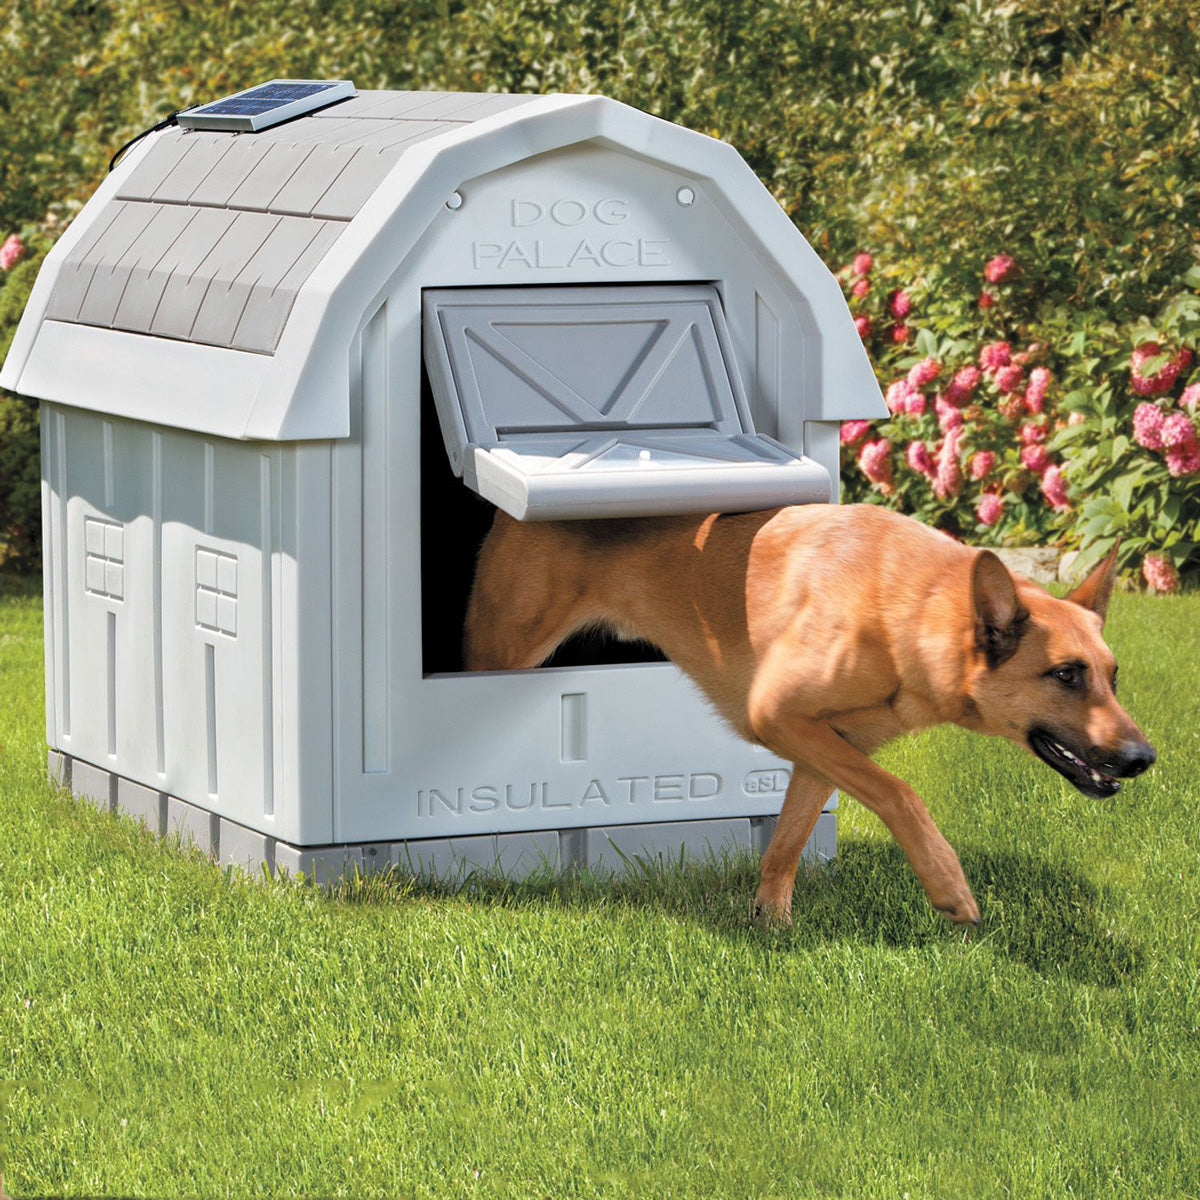 Premium Warm Dog House for Winter Outdoor Heated Dog House Large Insulated - Morealis